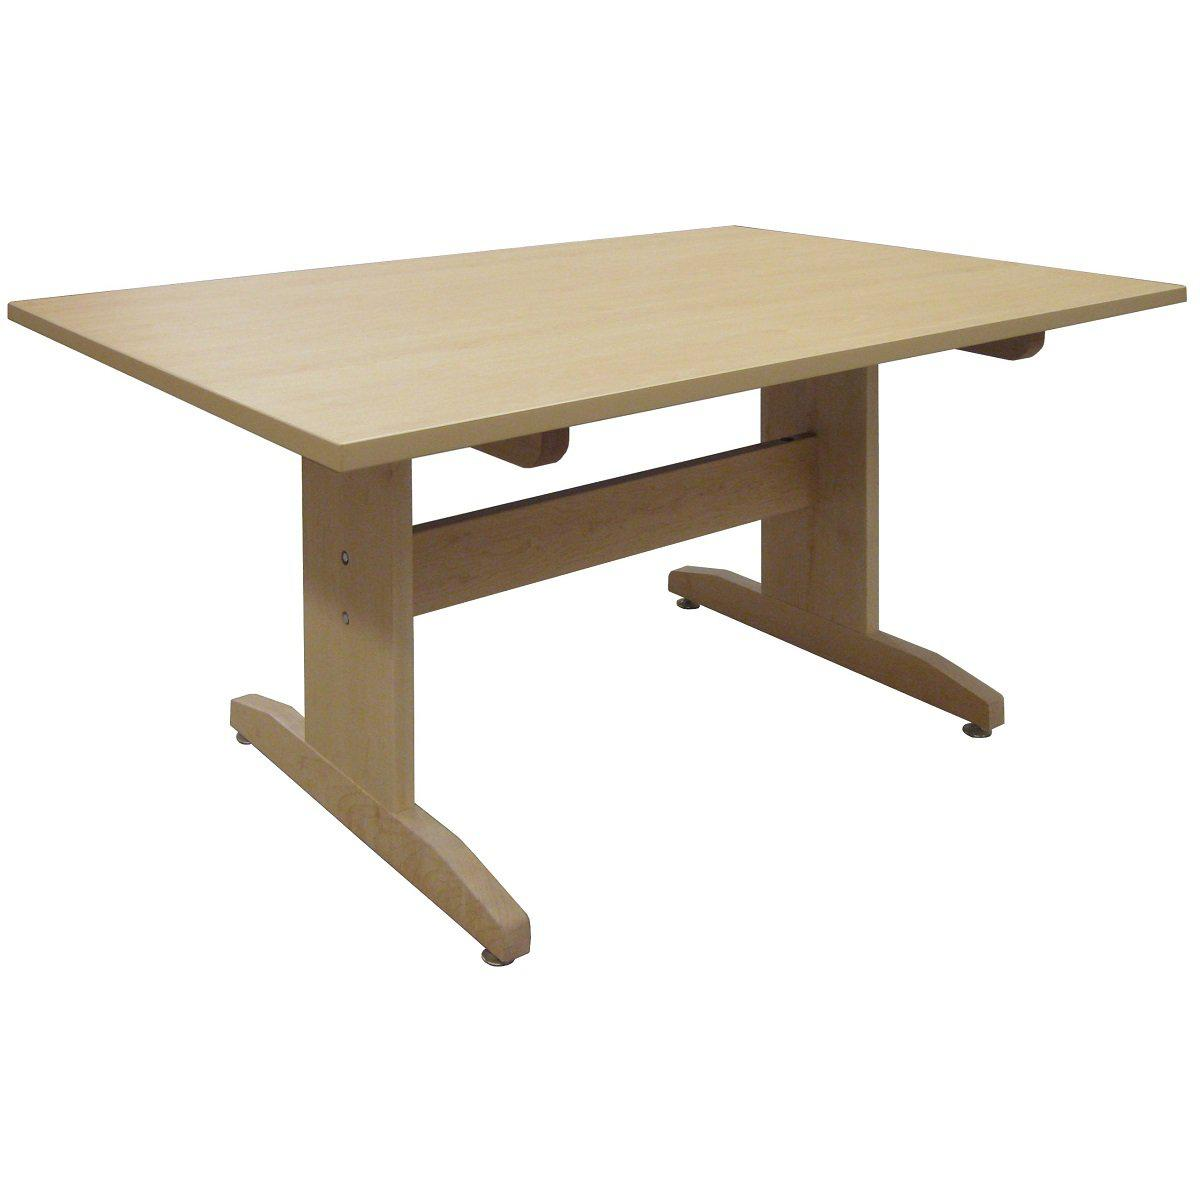 "Art Table, 42"" x 72"" Maple Grain Patterned HPL Top, 30"" High"